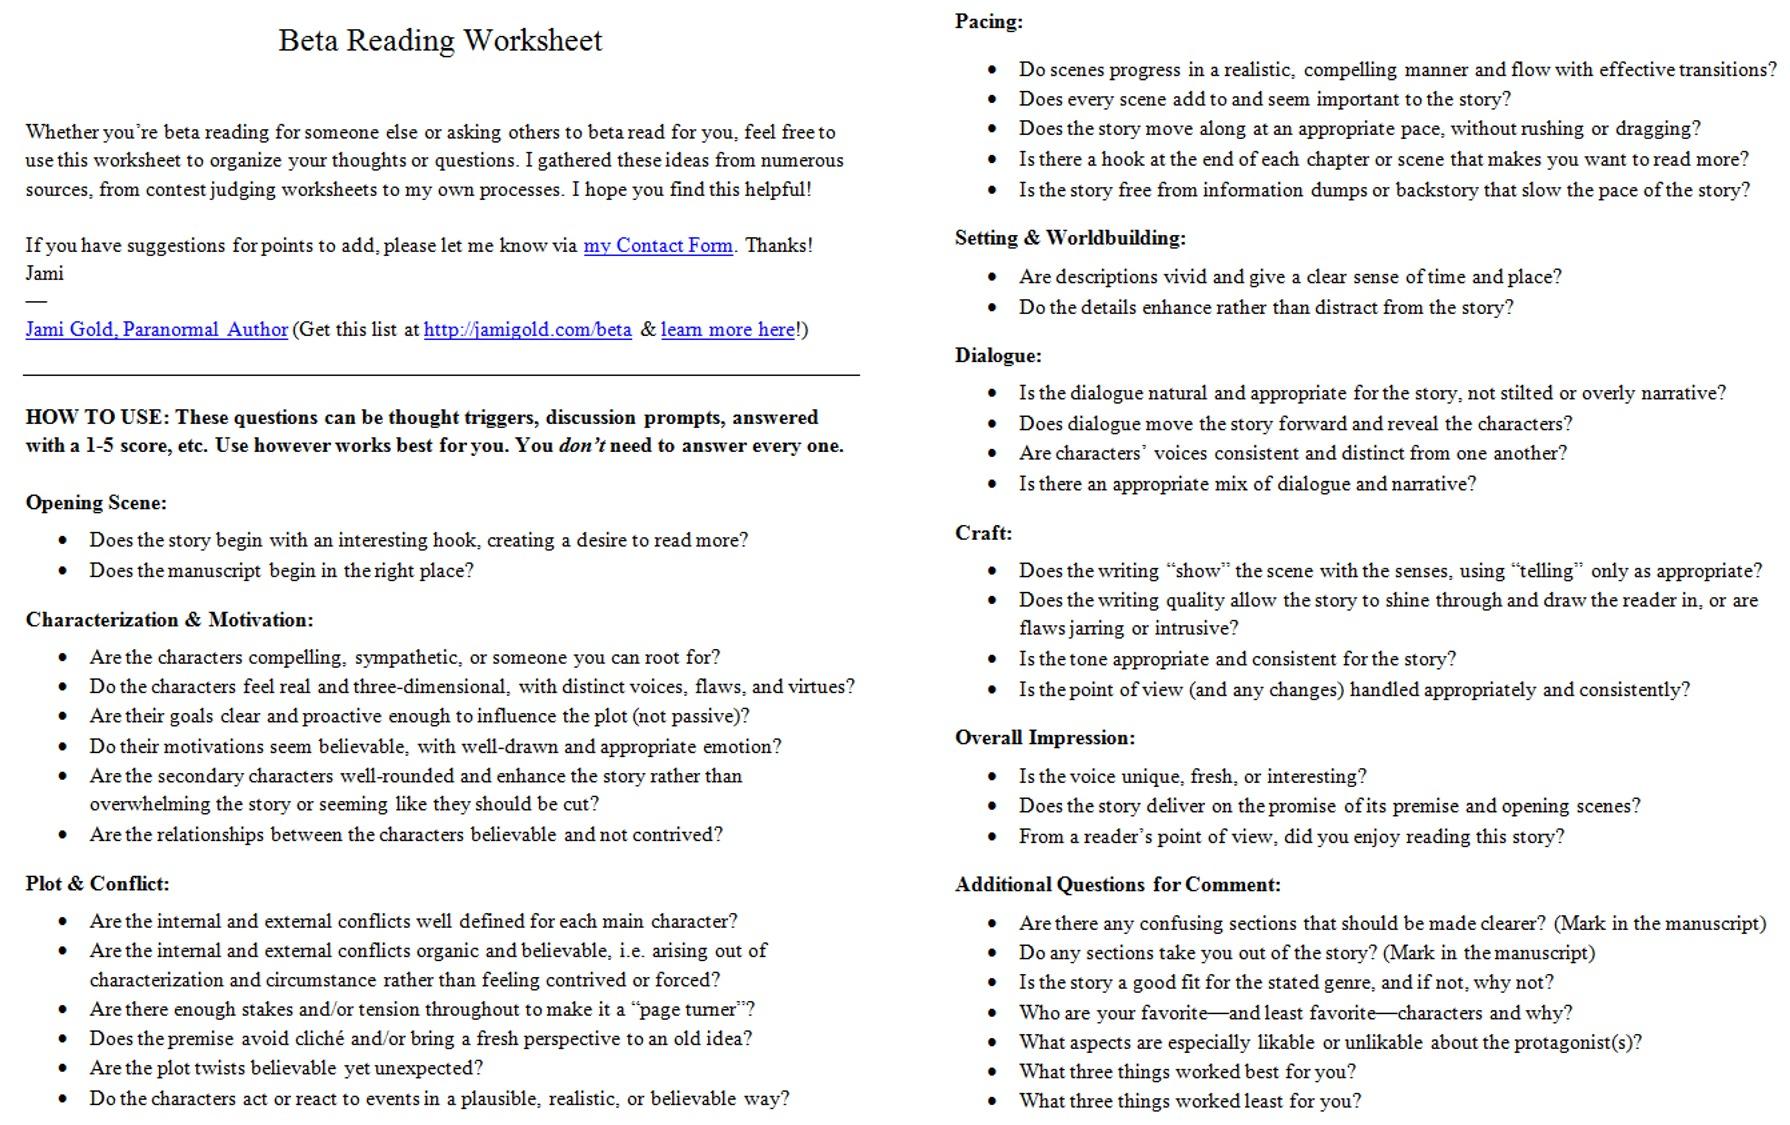 Proatmealus  Splendid Worksheets For Writers  Jami Gold Paranormal Author With Luxury Screen Shot Of The Twopage Beta Reading Worksheet With Captivating Tes Worksheets Also Math Measuring Worksheets In Addition Key Stage  Literacy Worksheets And Writing A Letter Worksheets As Well As Worksheets For Multiplication And Division Additionally Suffix And Prefix Worksheets Th Grade From Jamigoldcom With Proatmealus  Luxury Worksheets For Writers  Jami Gold Paranormal Author With Captivating Screen Shot Of The Twopage Beta Reading Worksheet And Splendid Tes Worksheets Also Math Measuring Worksheets In Addition Key Stage  Literacy Worksheets From Jamigoldcom